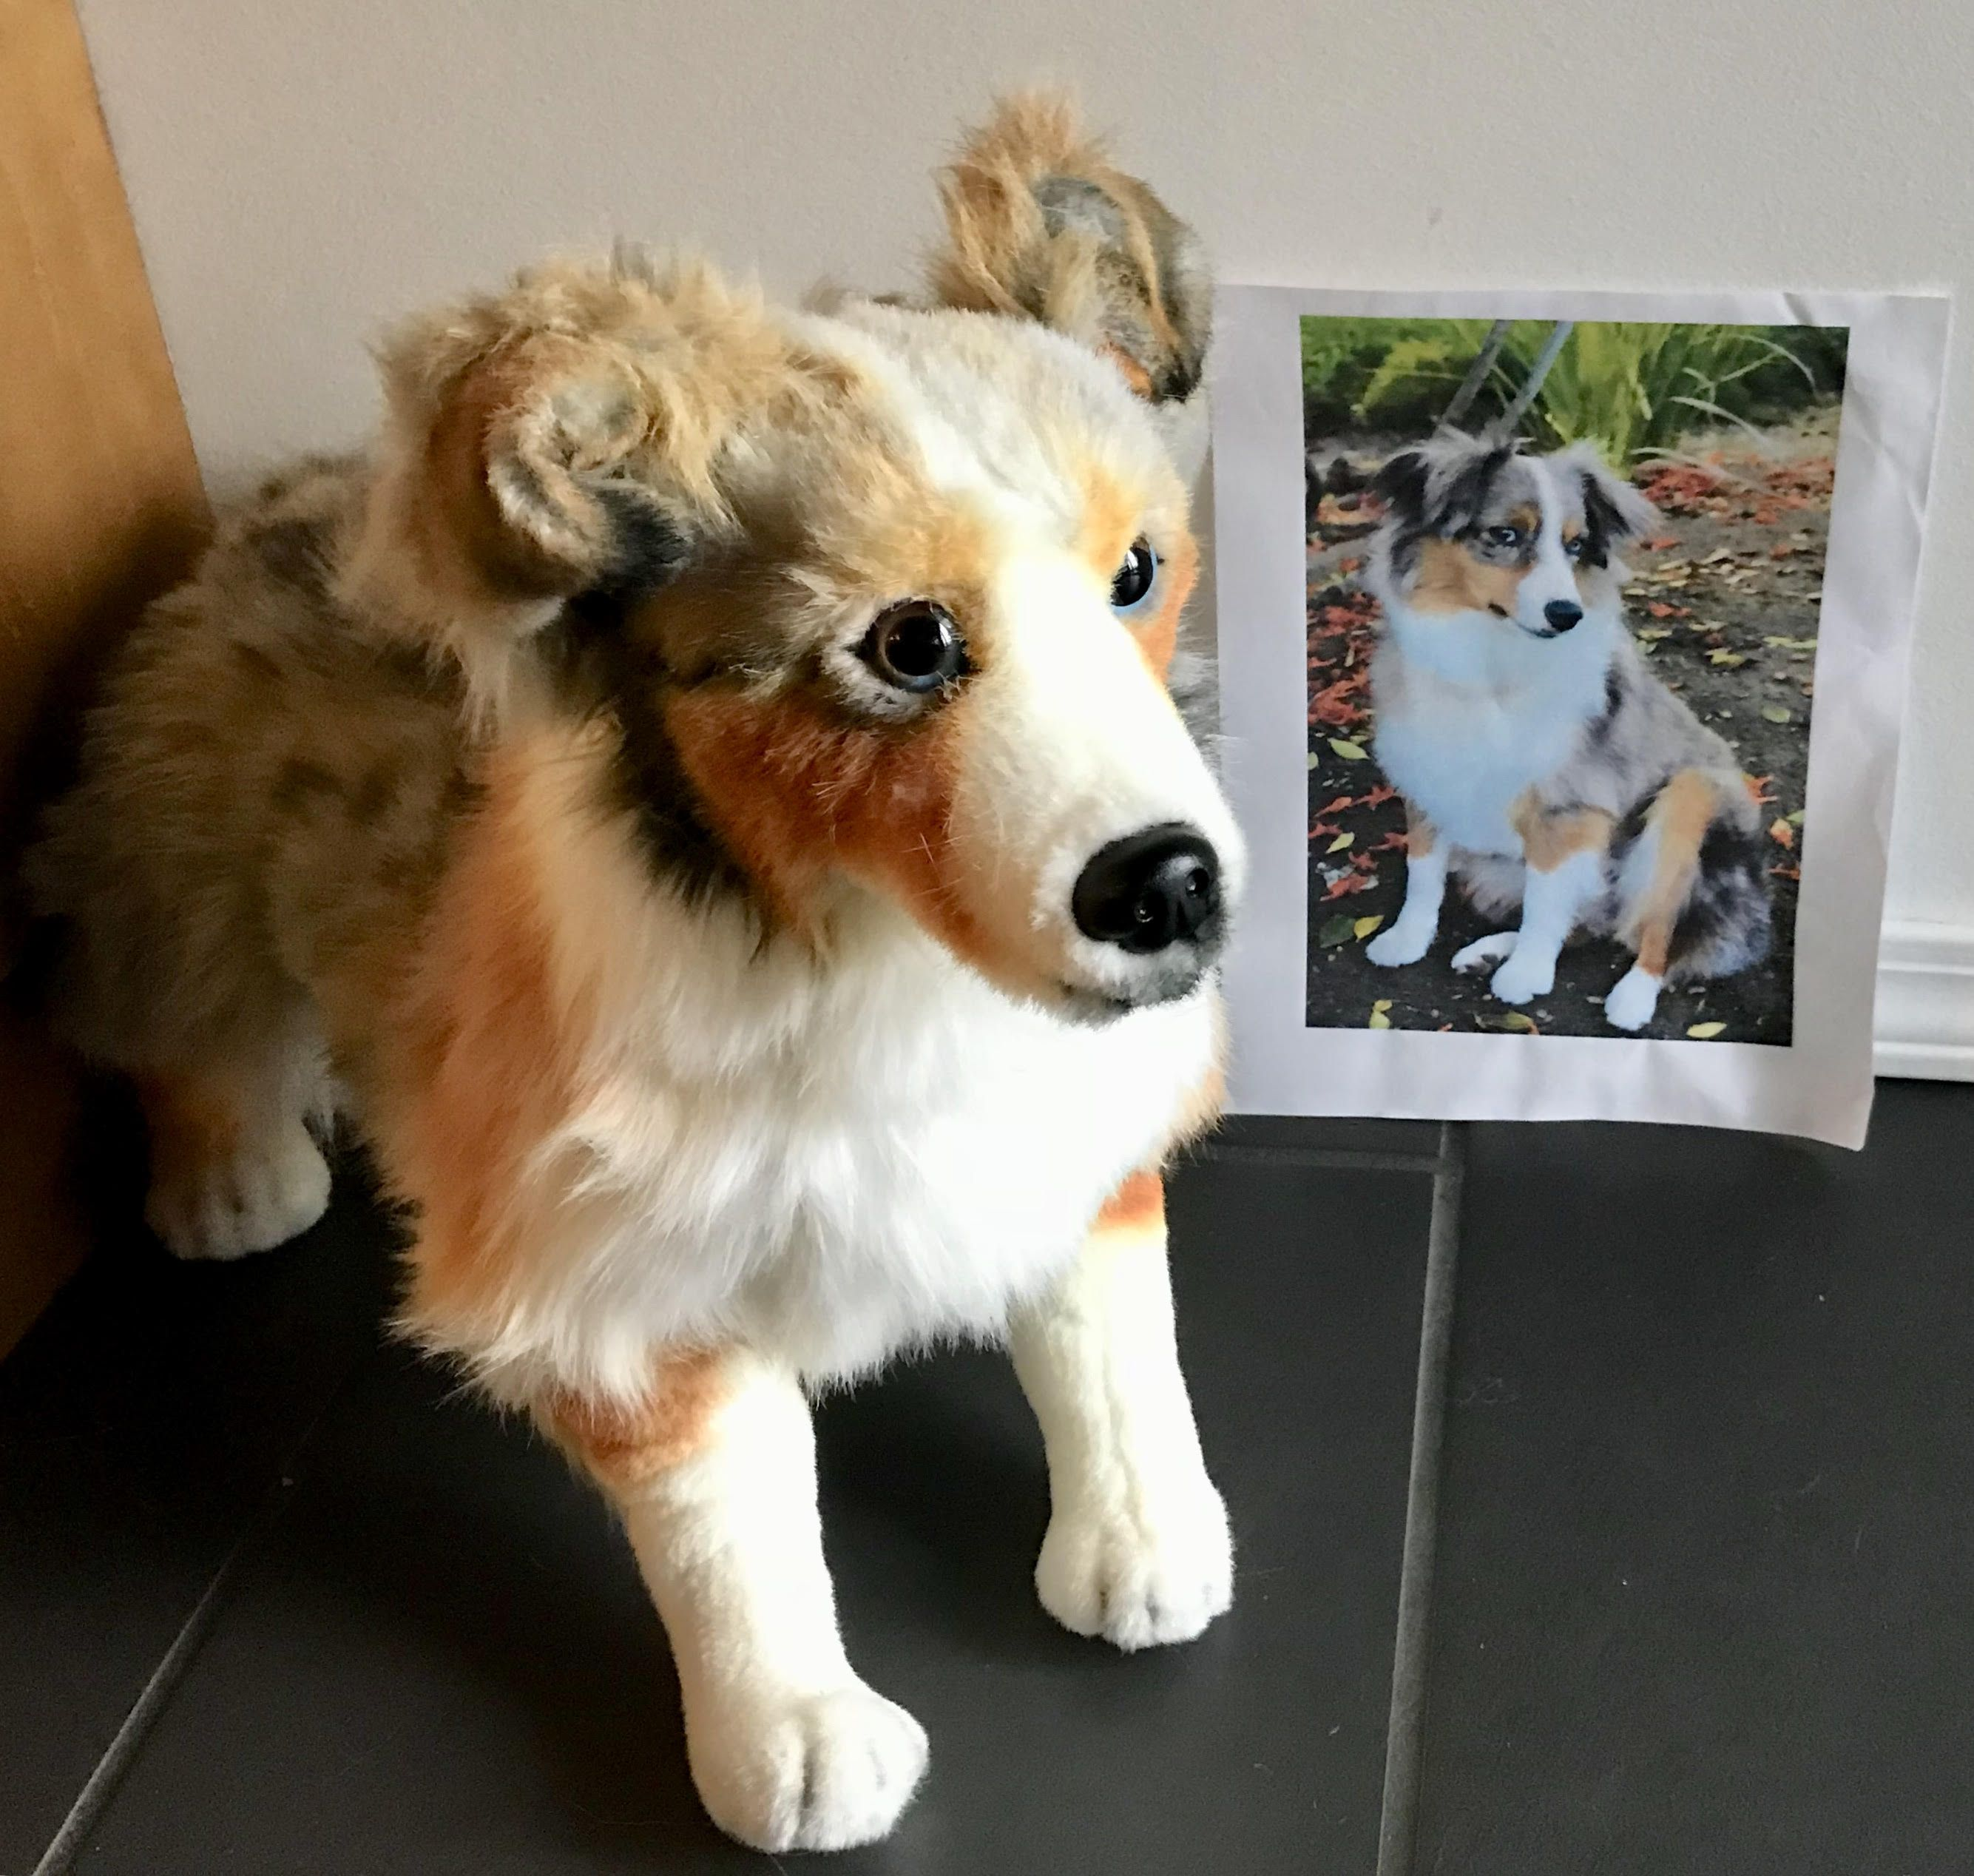 37c05630dc8f Custom Australian Shepherd Stuffed Animal | Get a Custom Animal of Your Pet  | Turn your pet into a stuffed animal | Clone your Pet | Custom Plush |  Custom ...